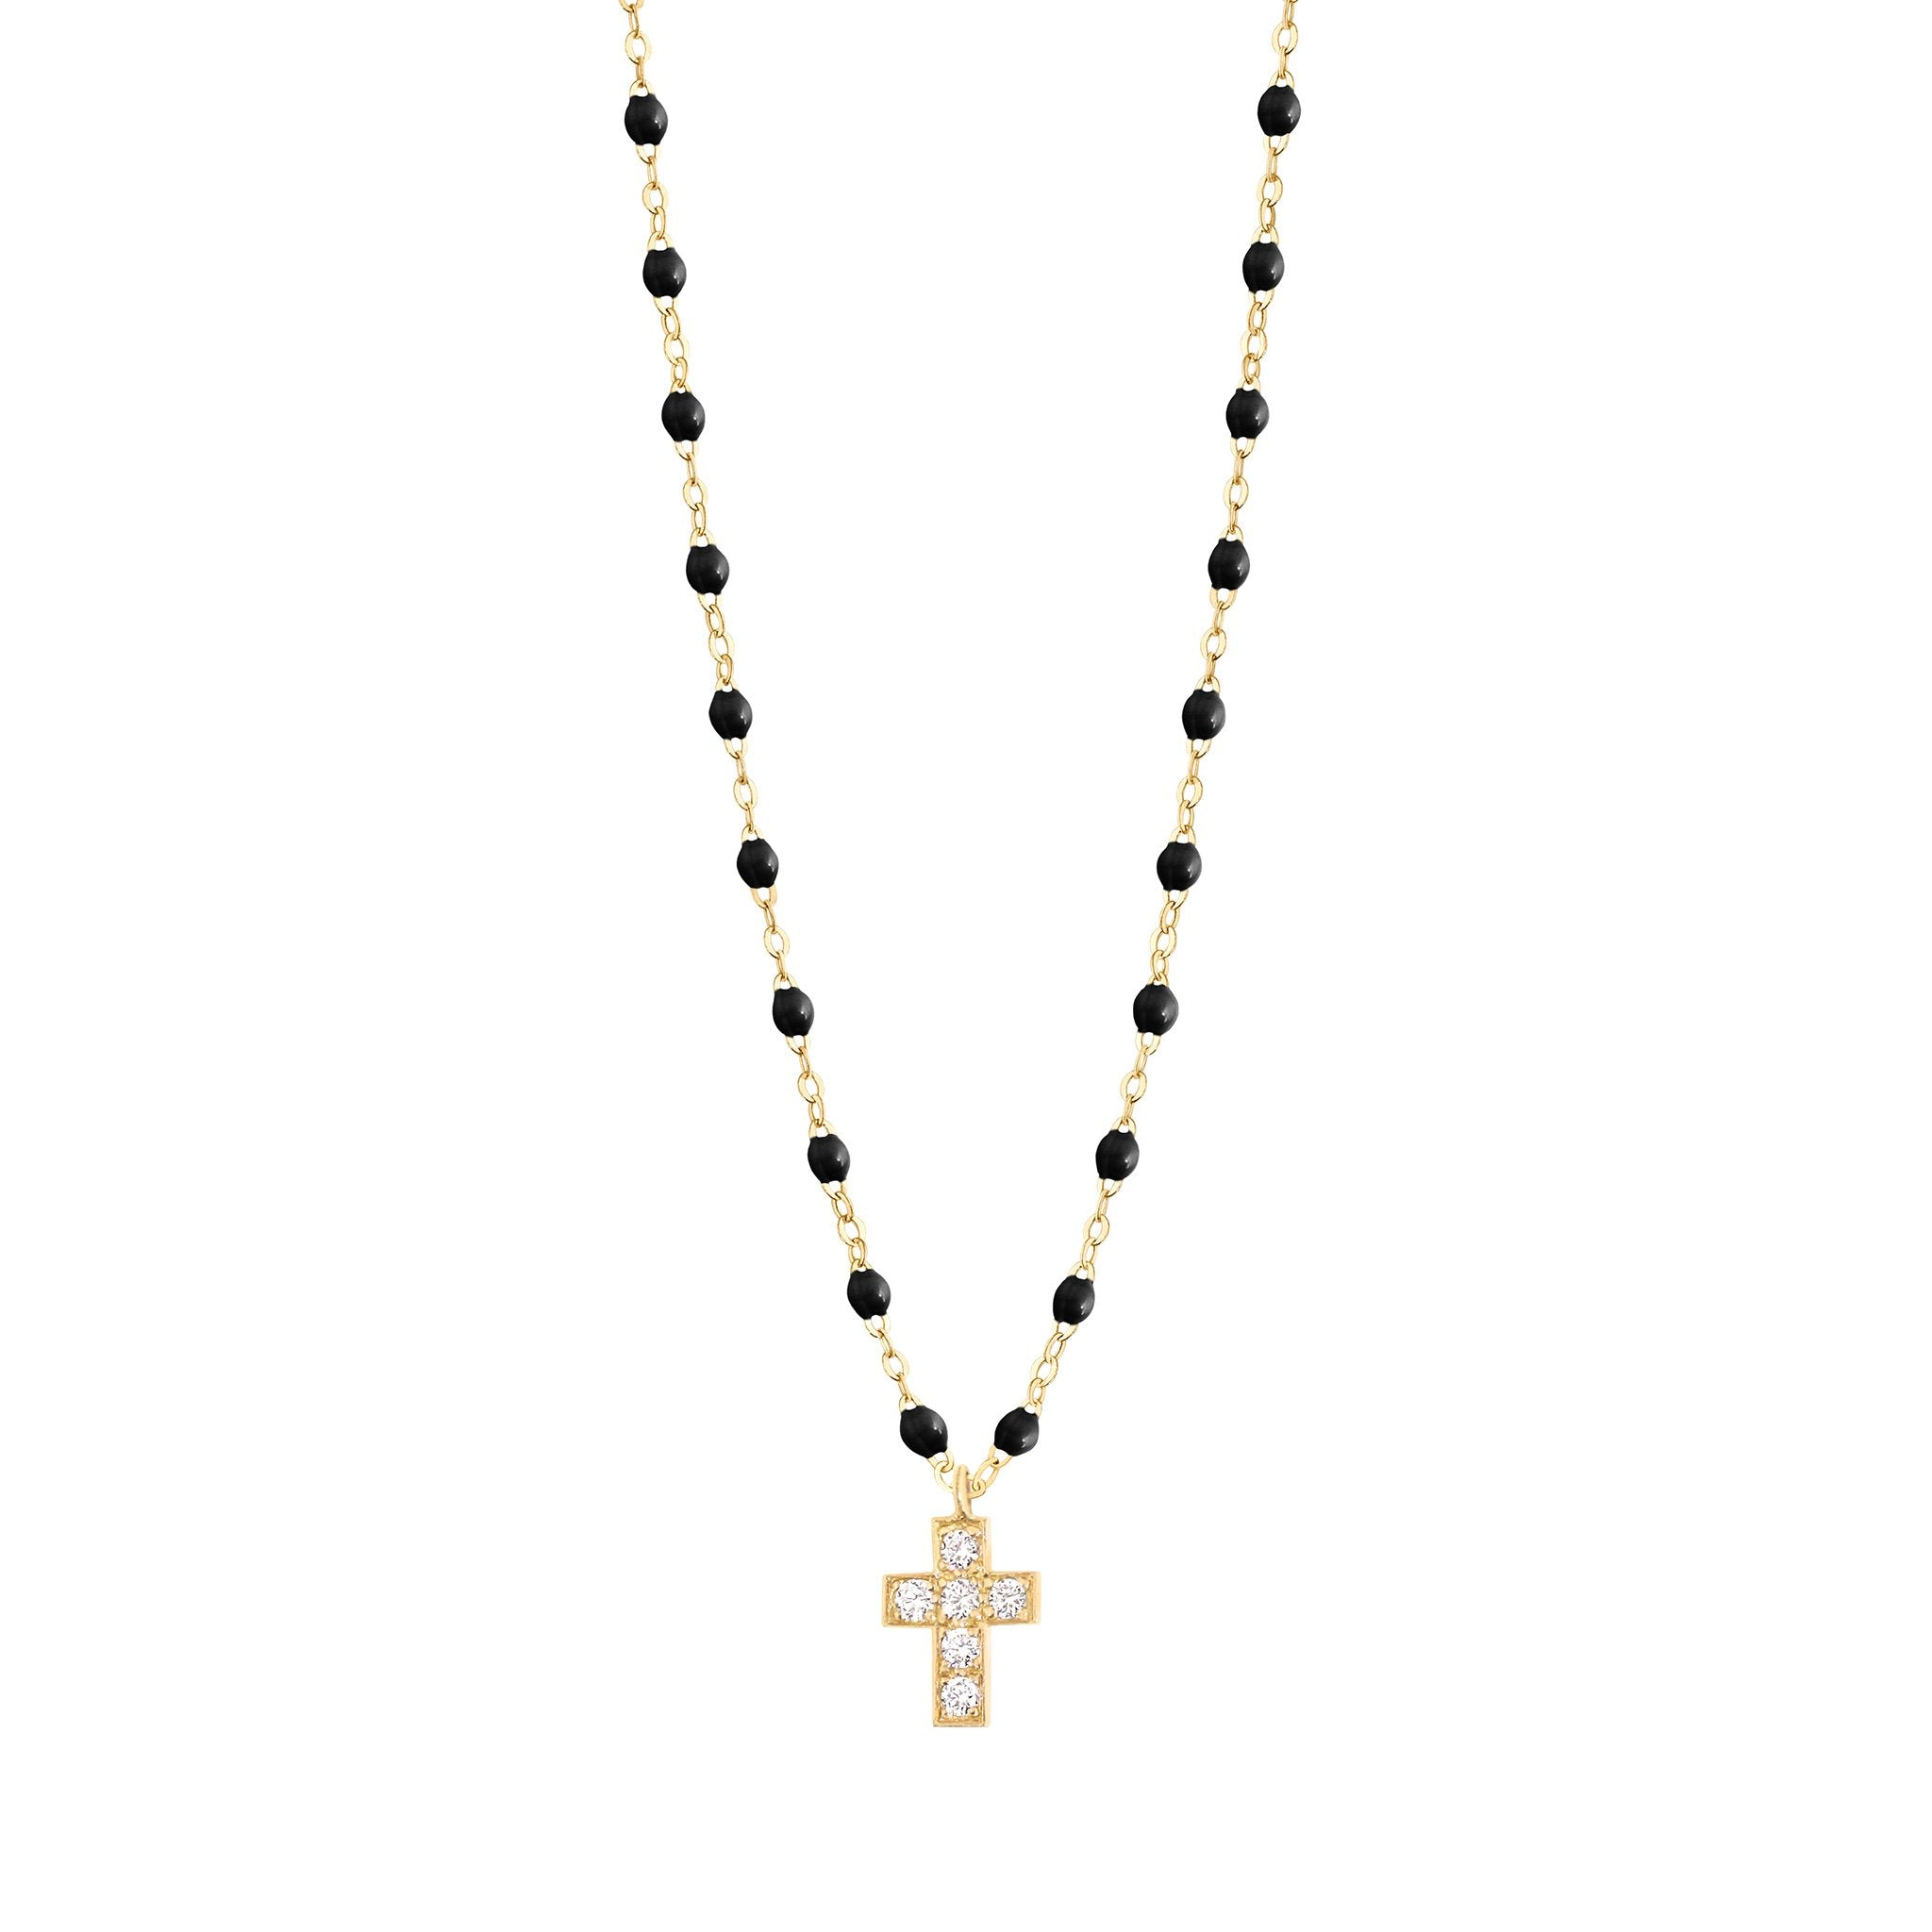 Gigi Clozeau - Collier noir Croix diamants, or jaune, 42 cm